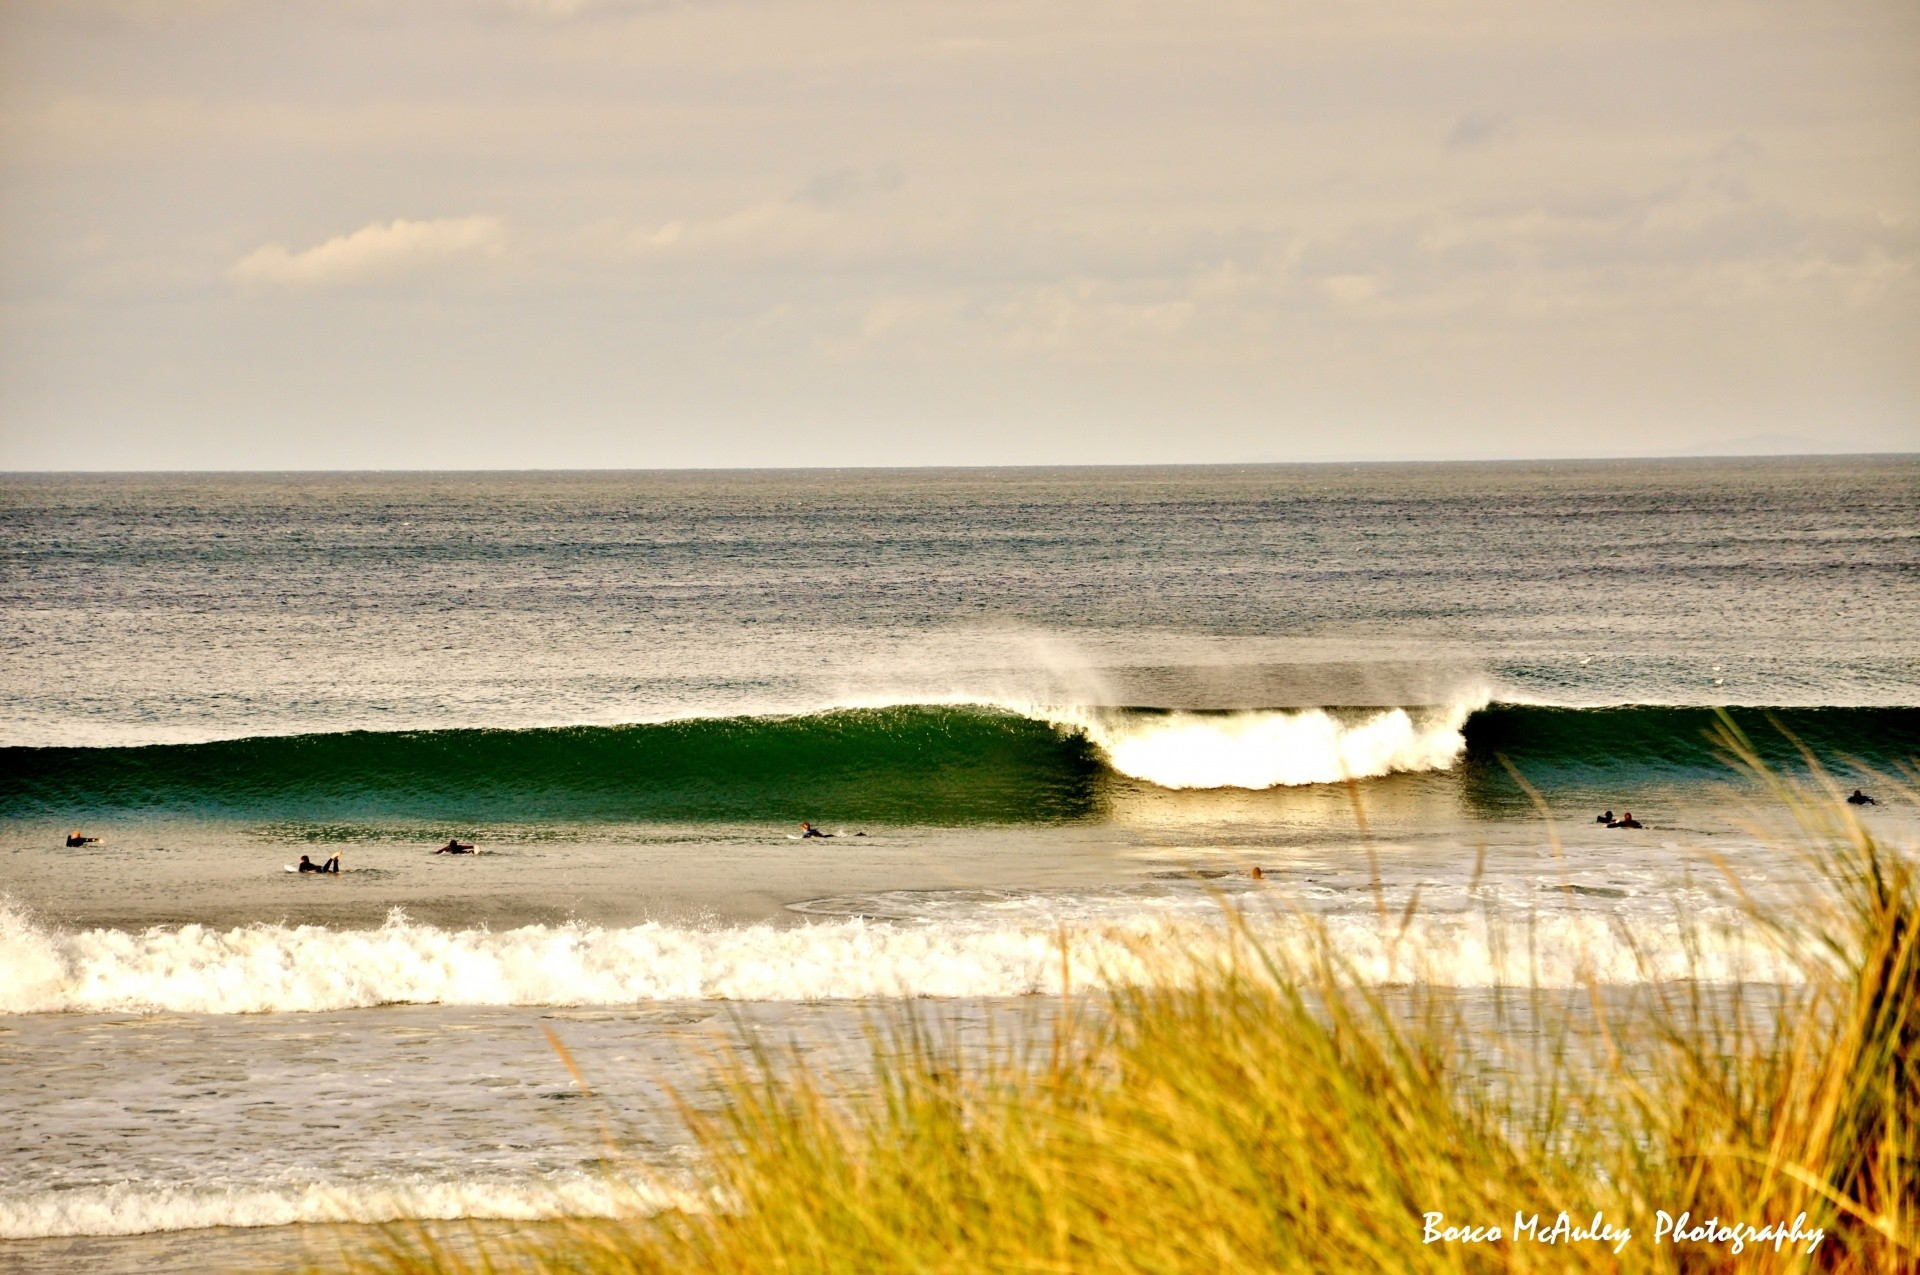 Bosco McAuley's photo of Portrush